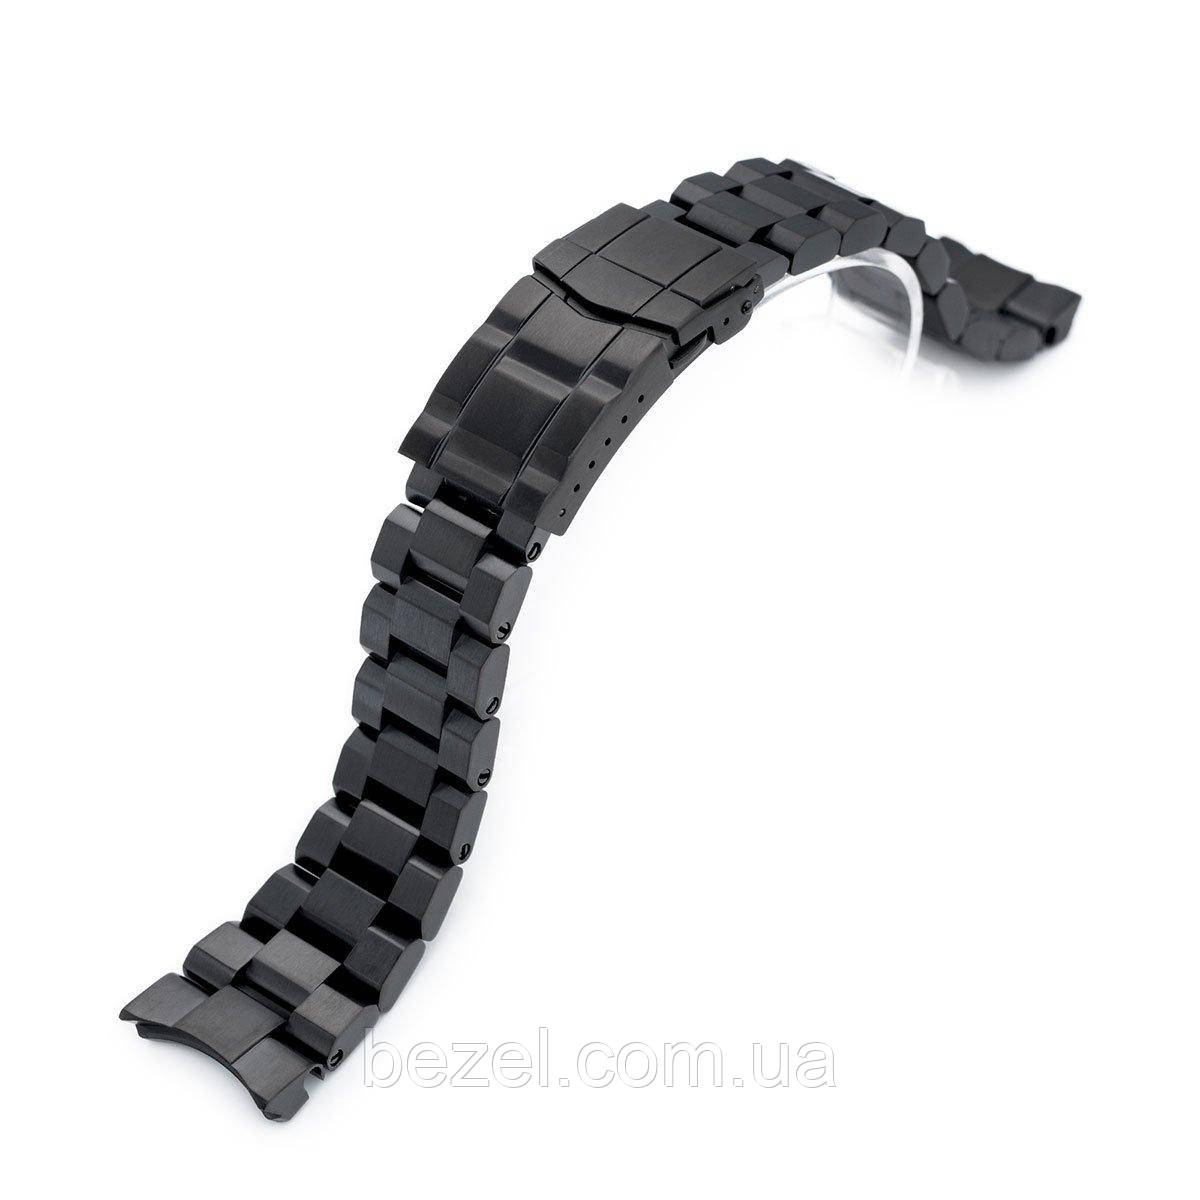 22mm Hexad Oyster 316L Stainless Steel Watch Band for Seiko Samurai SRPB51, SRPB55, Submariner Diver Clasp, PVD Black